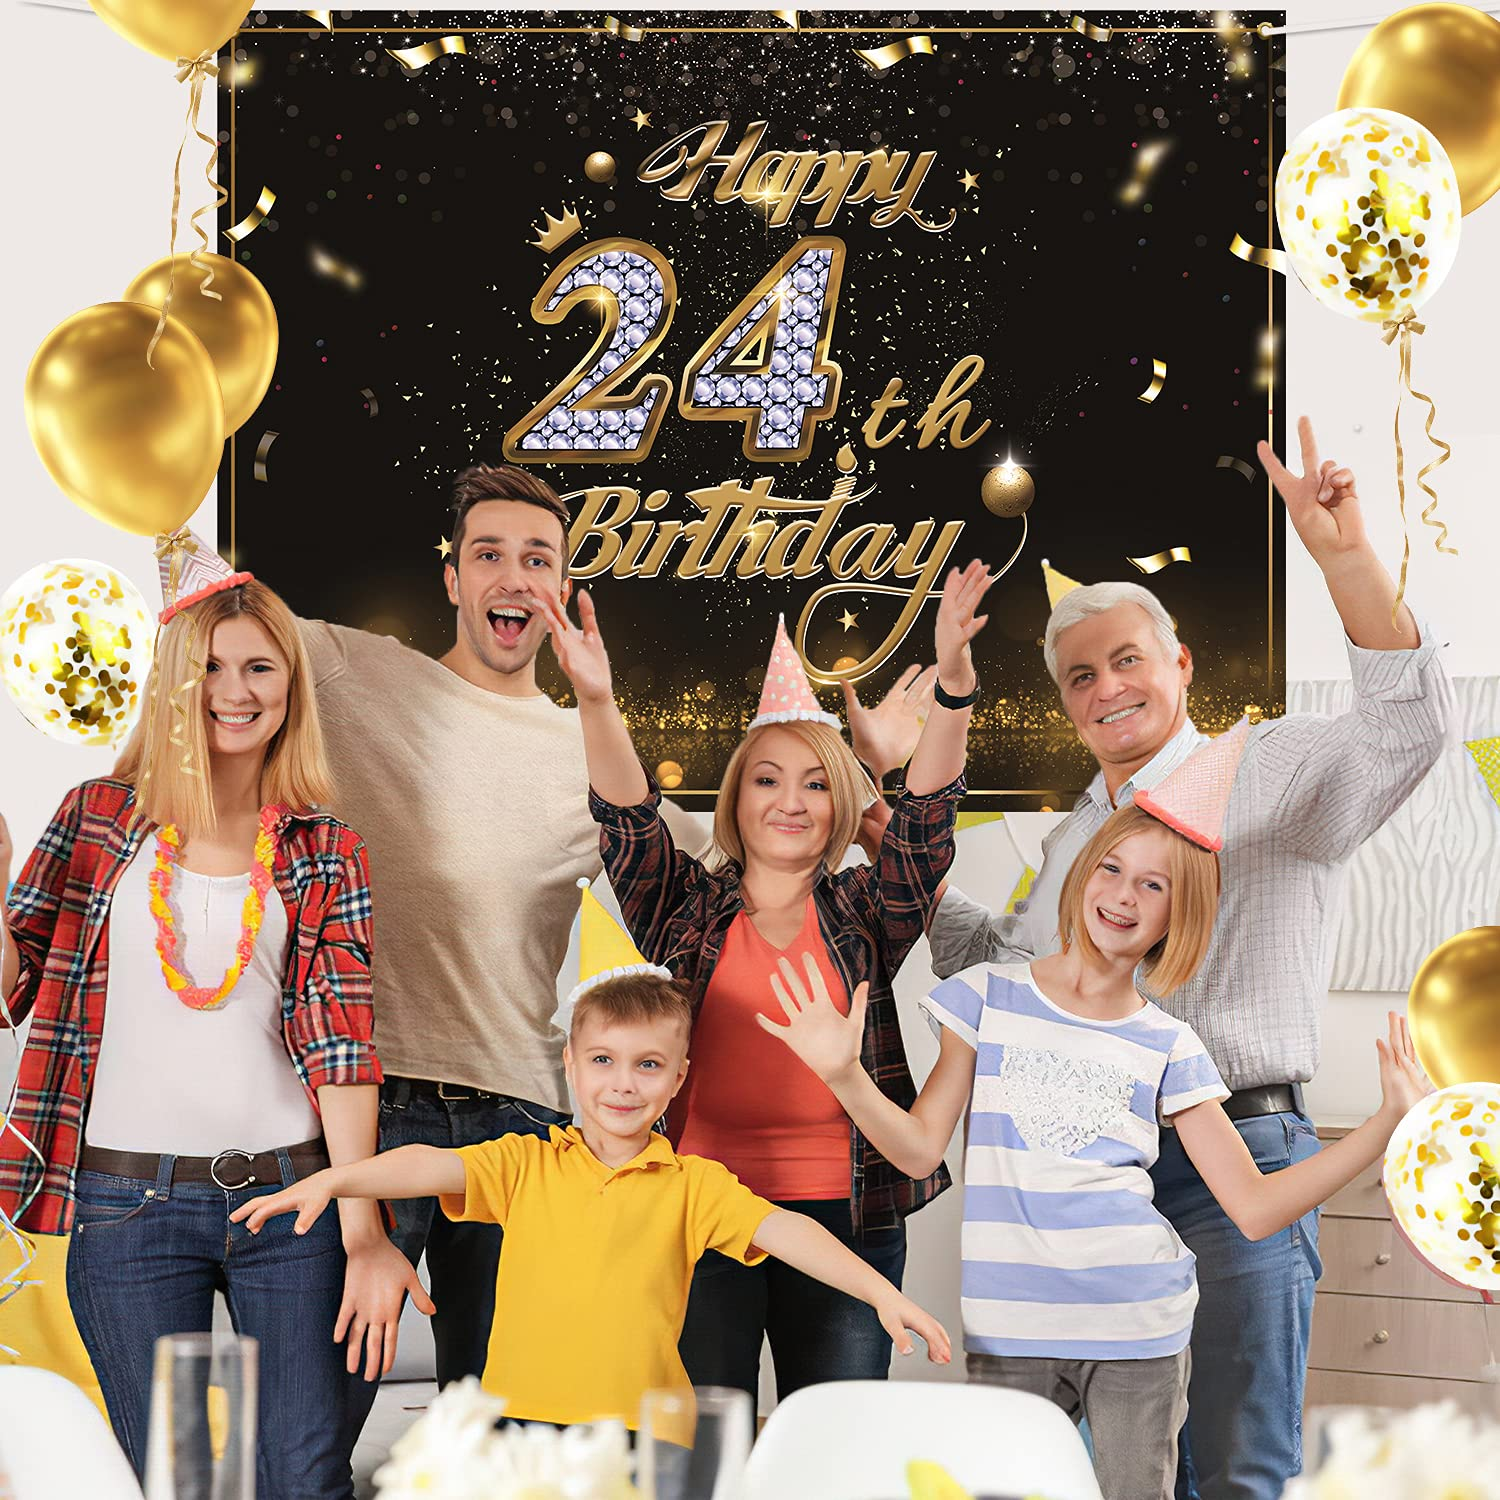 Gatherfun Birthday Party Supplies Happy 24th Birthday Banner Backdrop with 10 Pcs balloons Black Gold Birthday Party Large Background Photo Props for Men and Women 24 Birthday Decorations